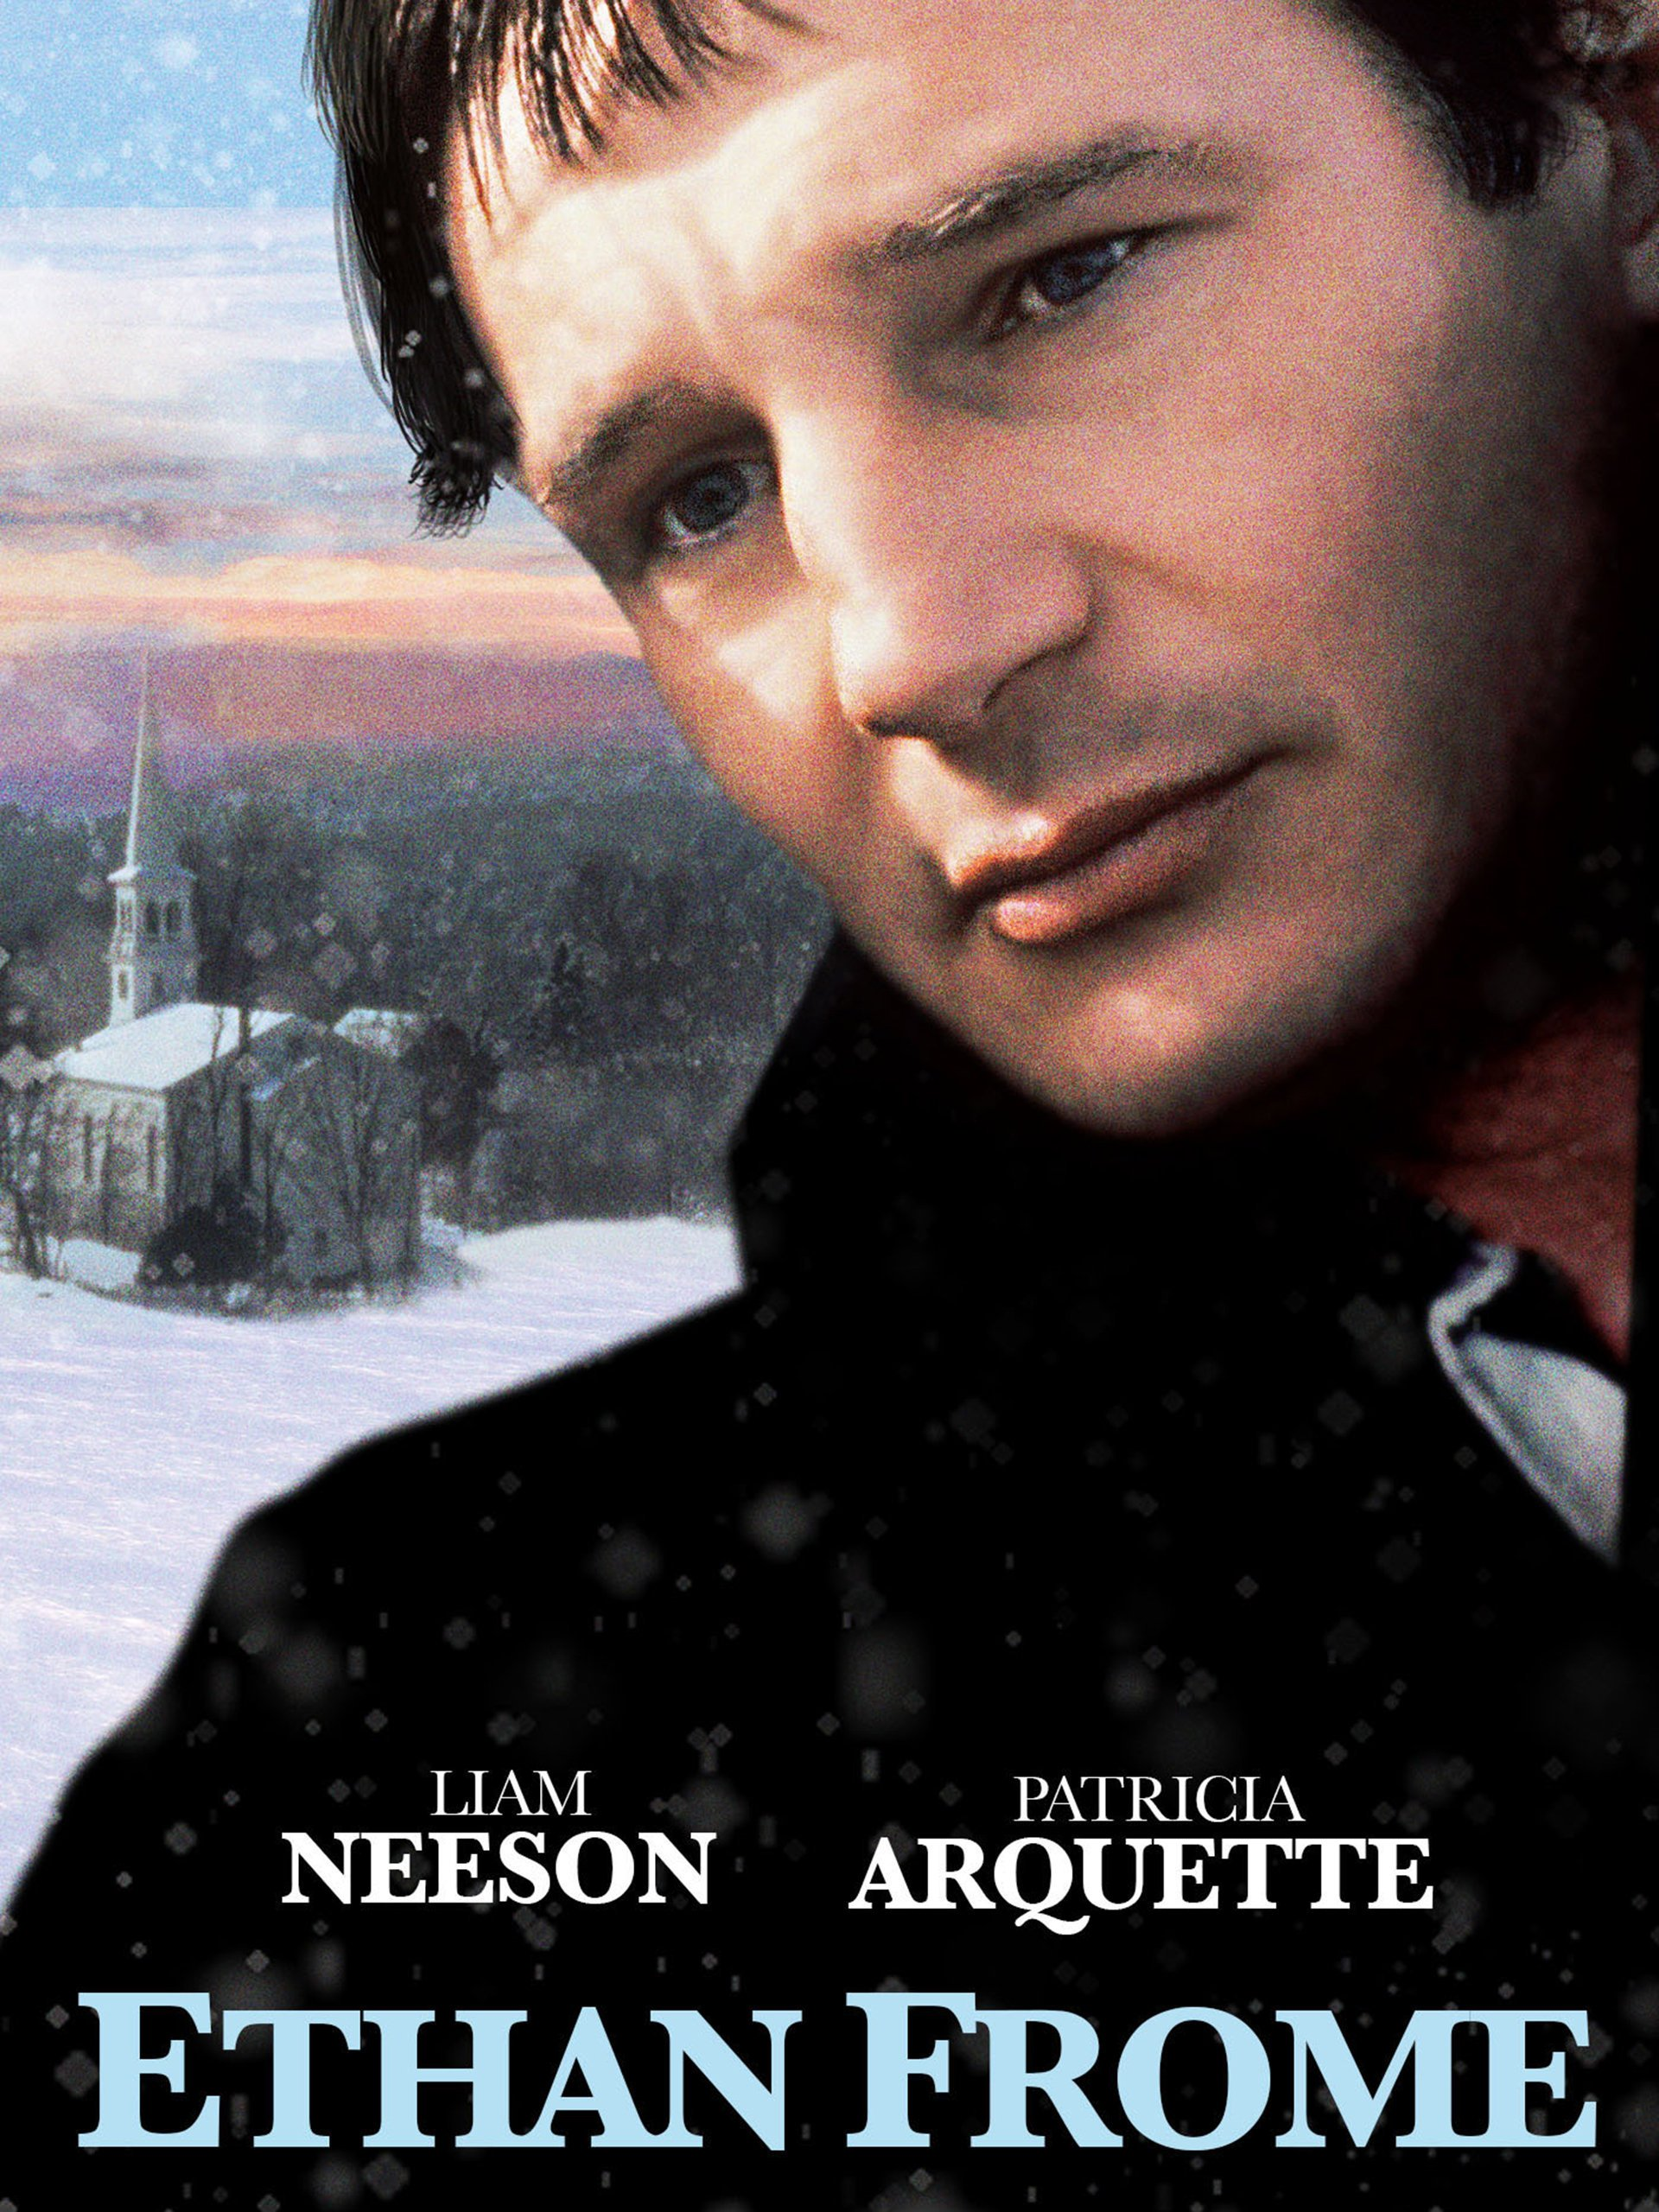 com ethan frome liam neeson gil rood tate donovan john  com ethan frome liam neeson gil rood tate donovan john madden digital services llc